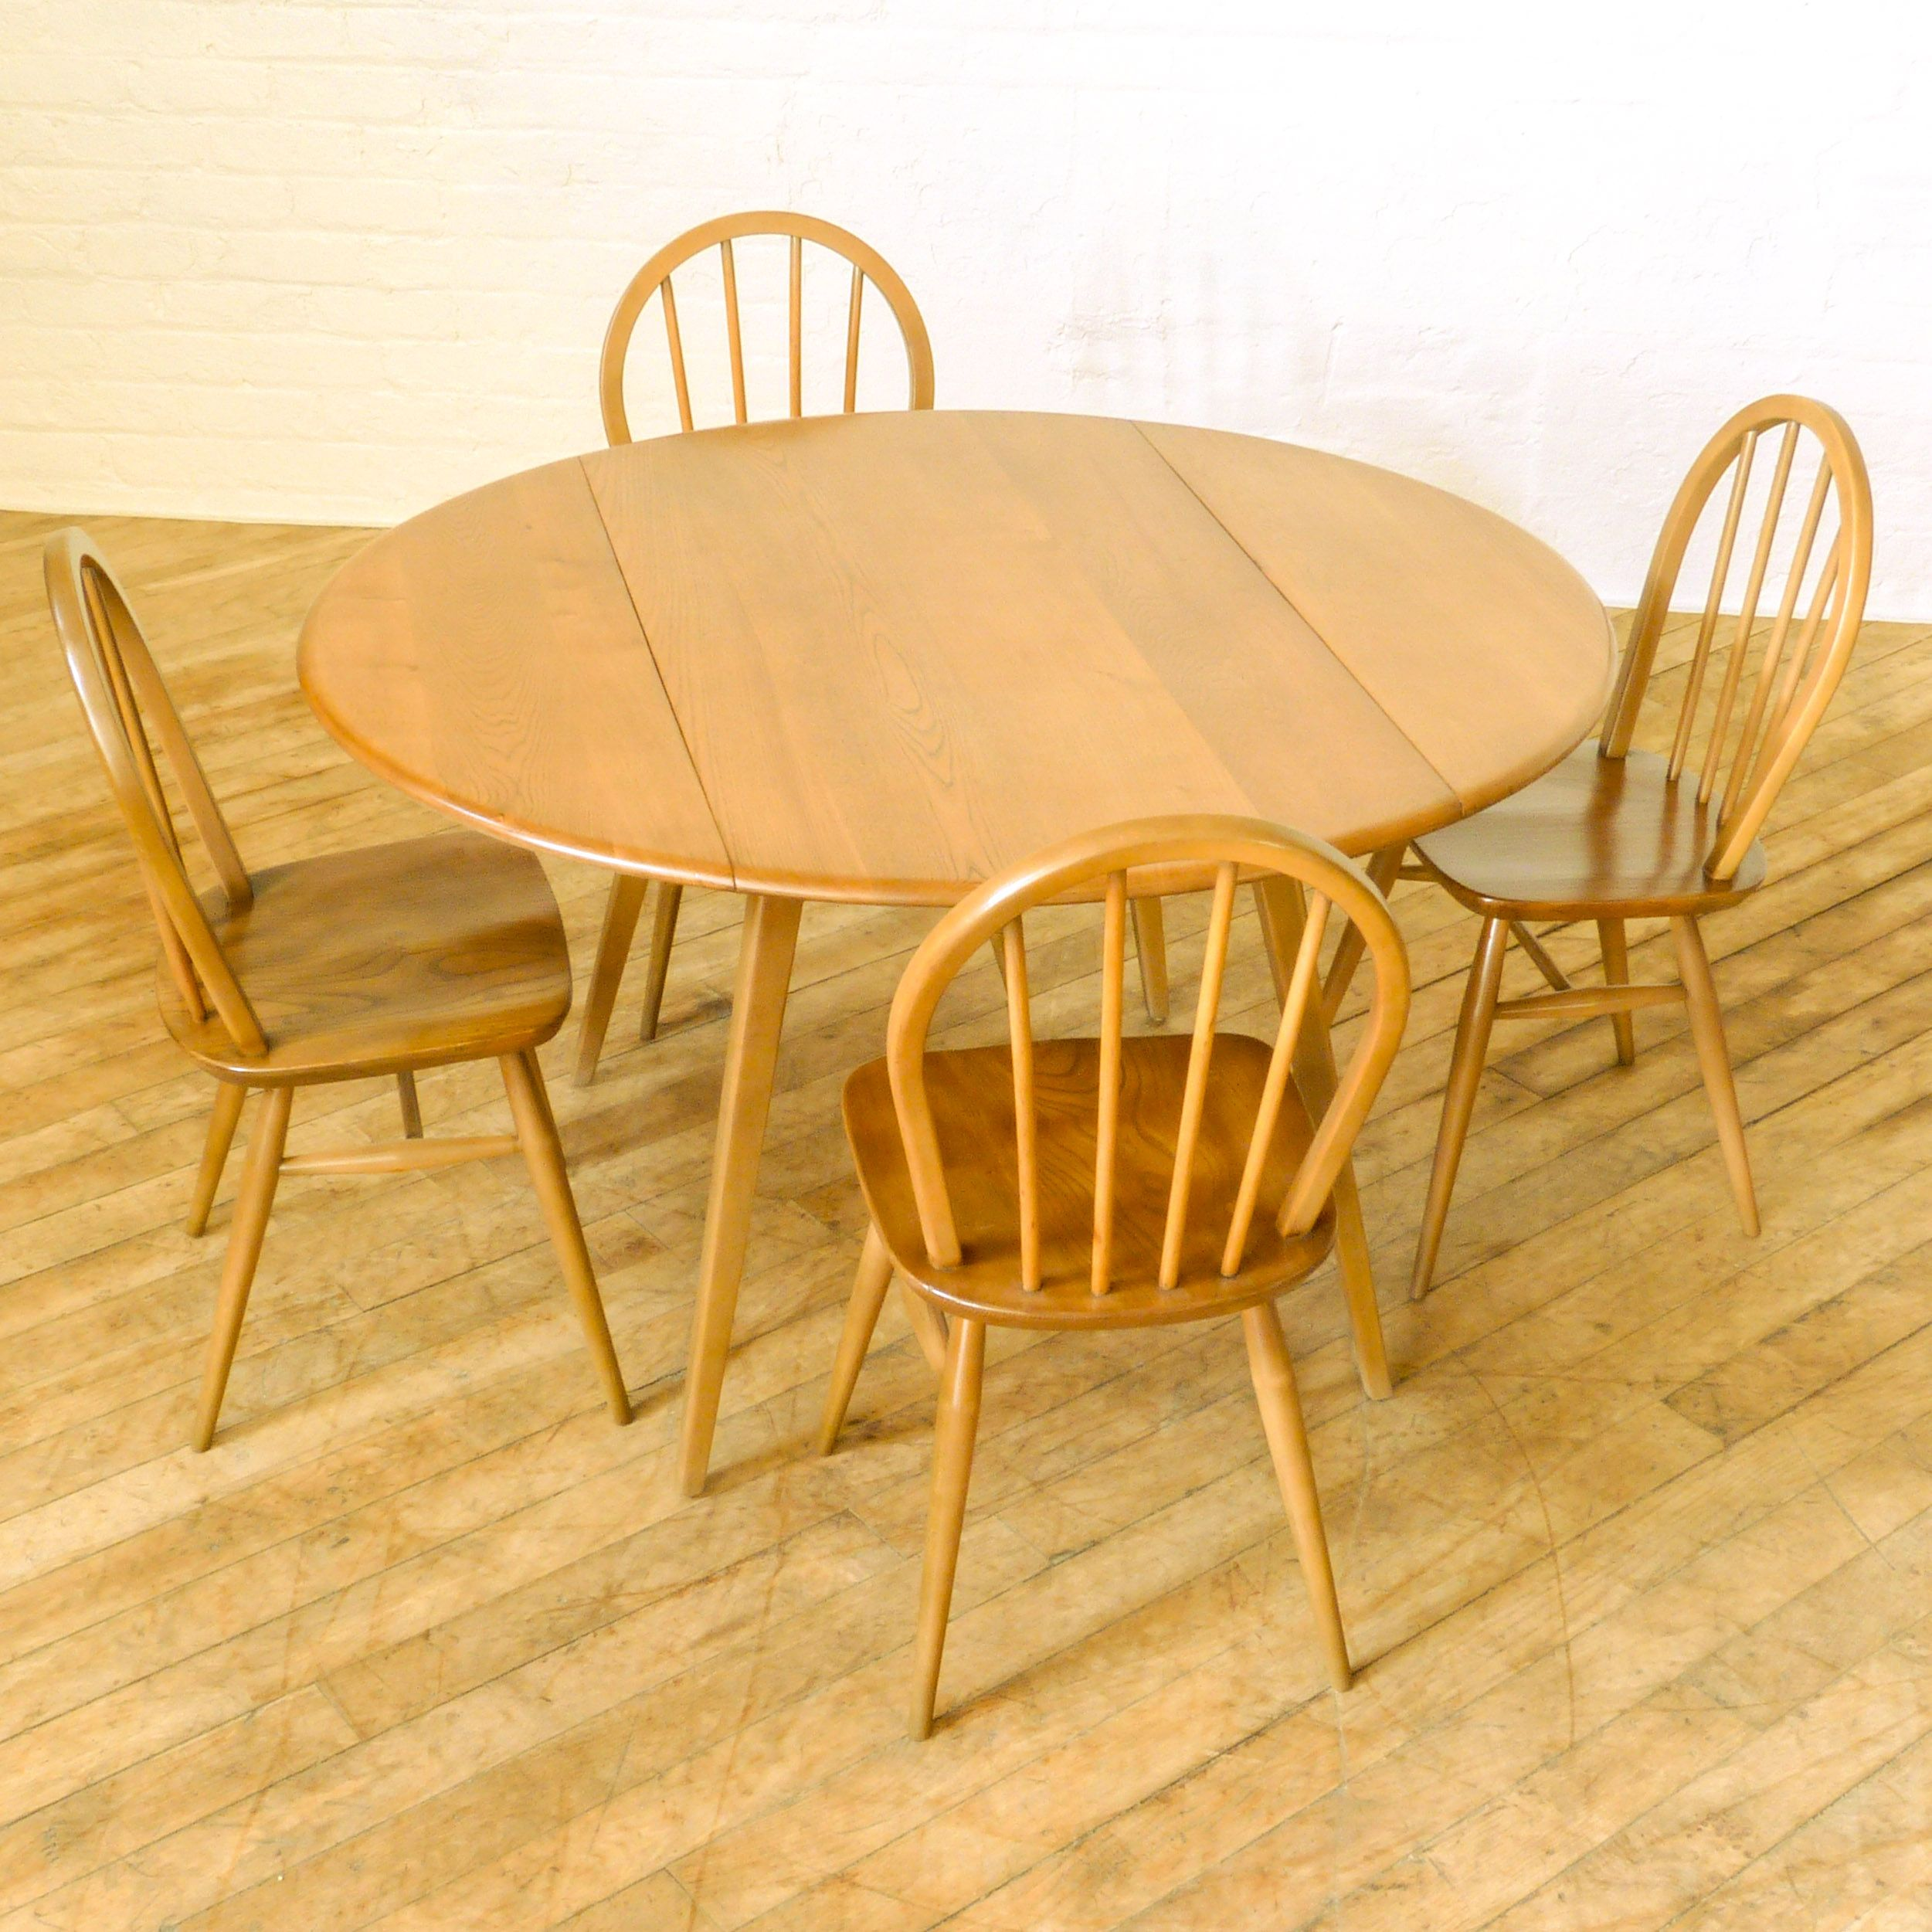 Vintage retro ercol drop leaf round dining kitchen table ebay - A 1960 S Ercol Dining Suite